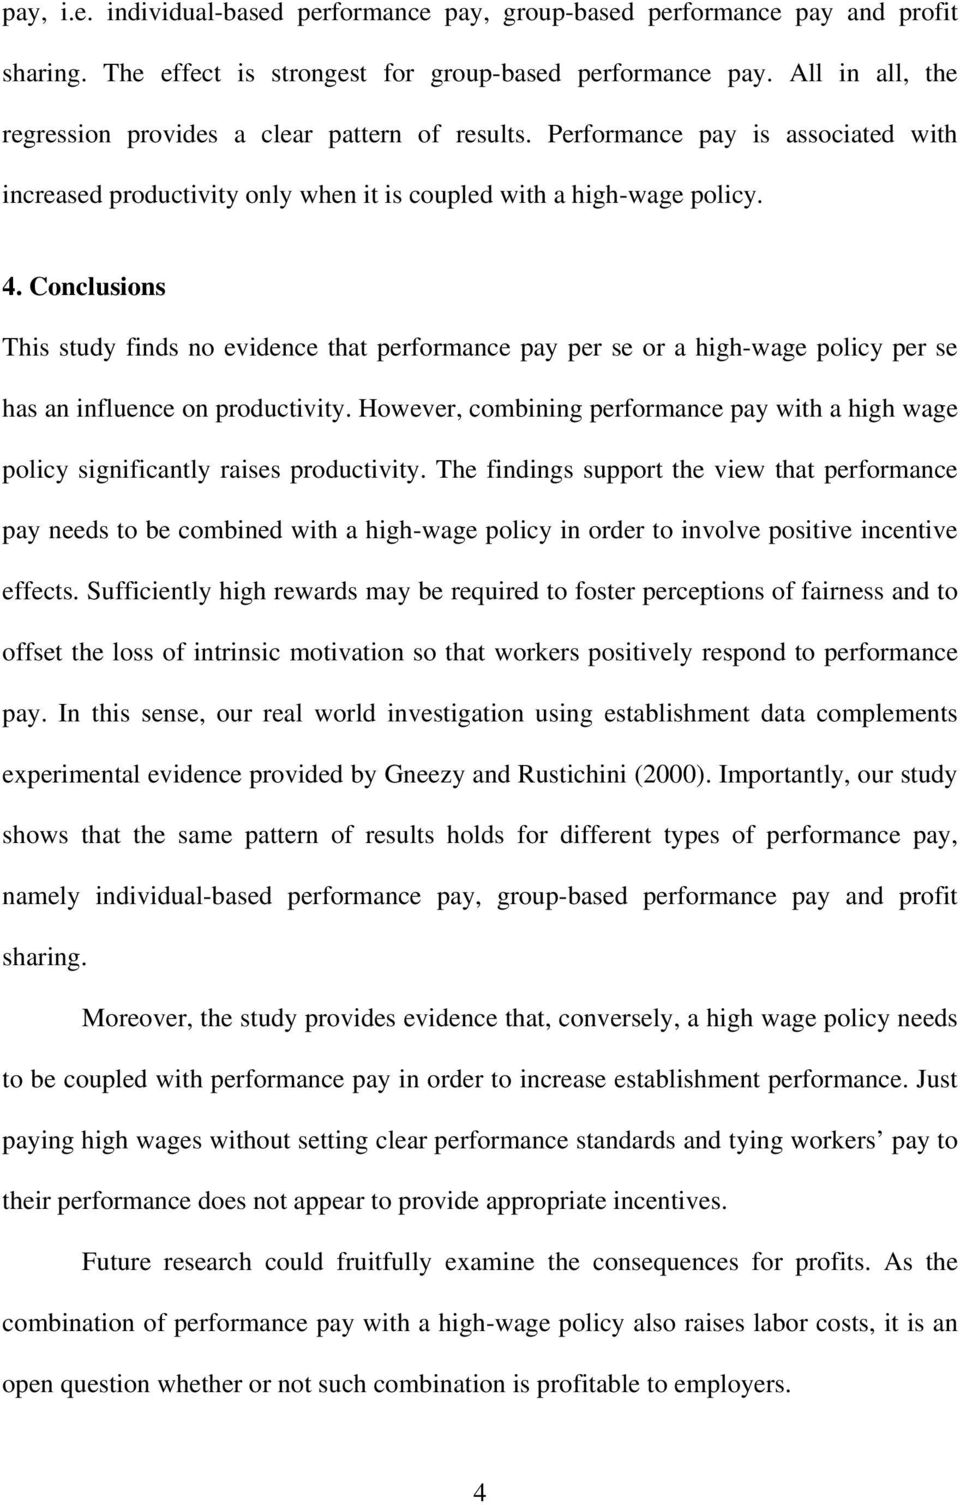 Conclusions This study finds no evidence that performance pay per se or a high-wage policy per se has an influence on productivity.